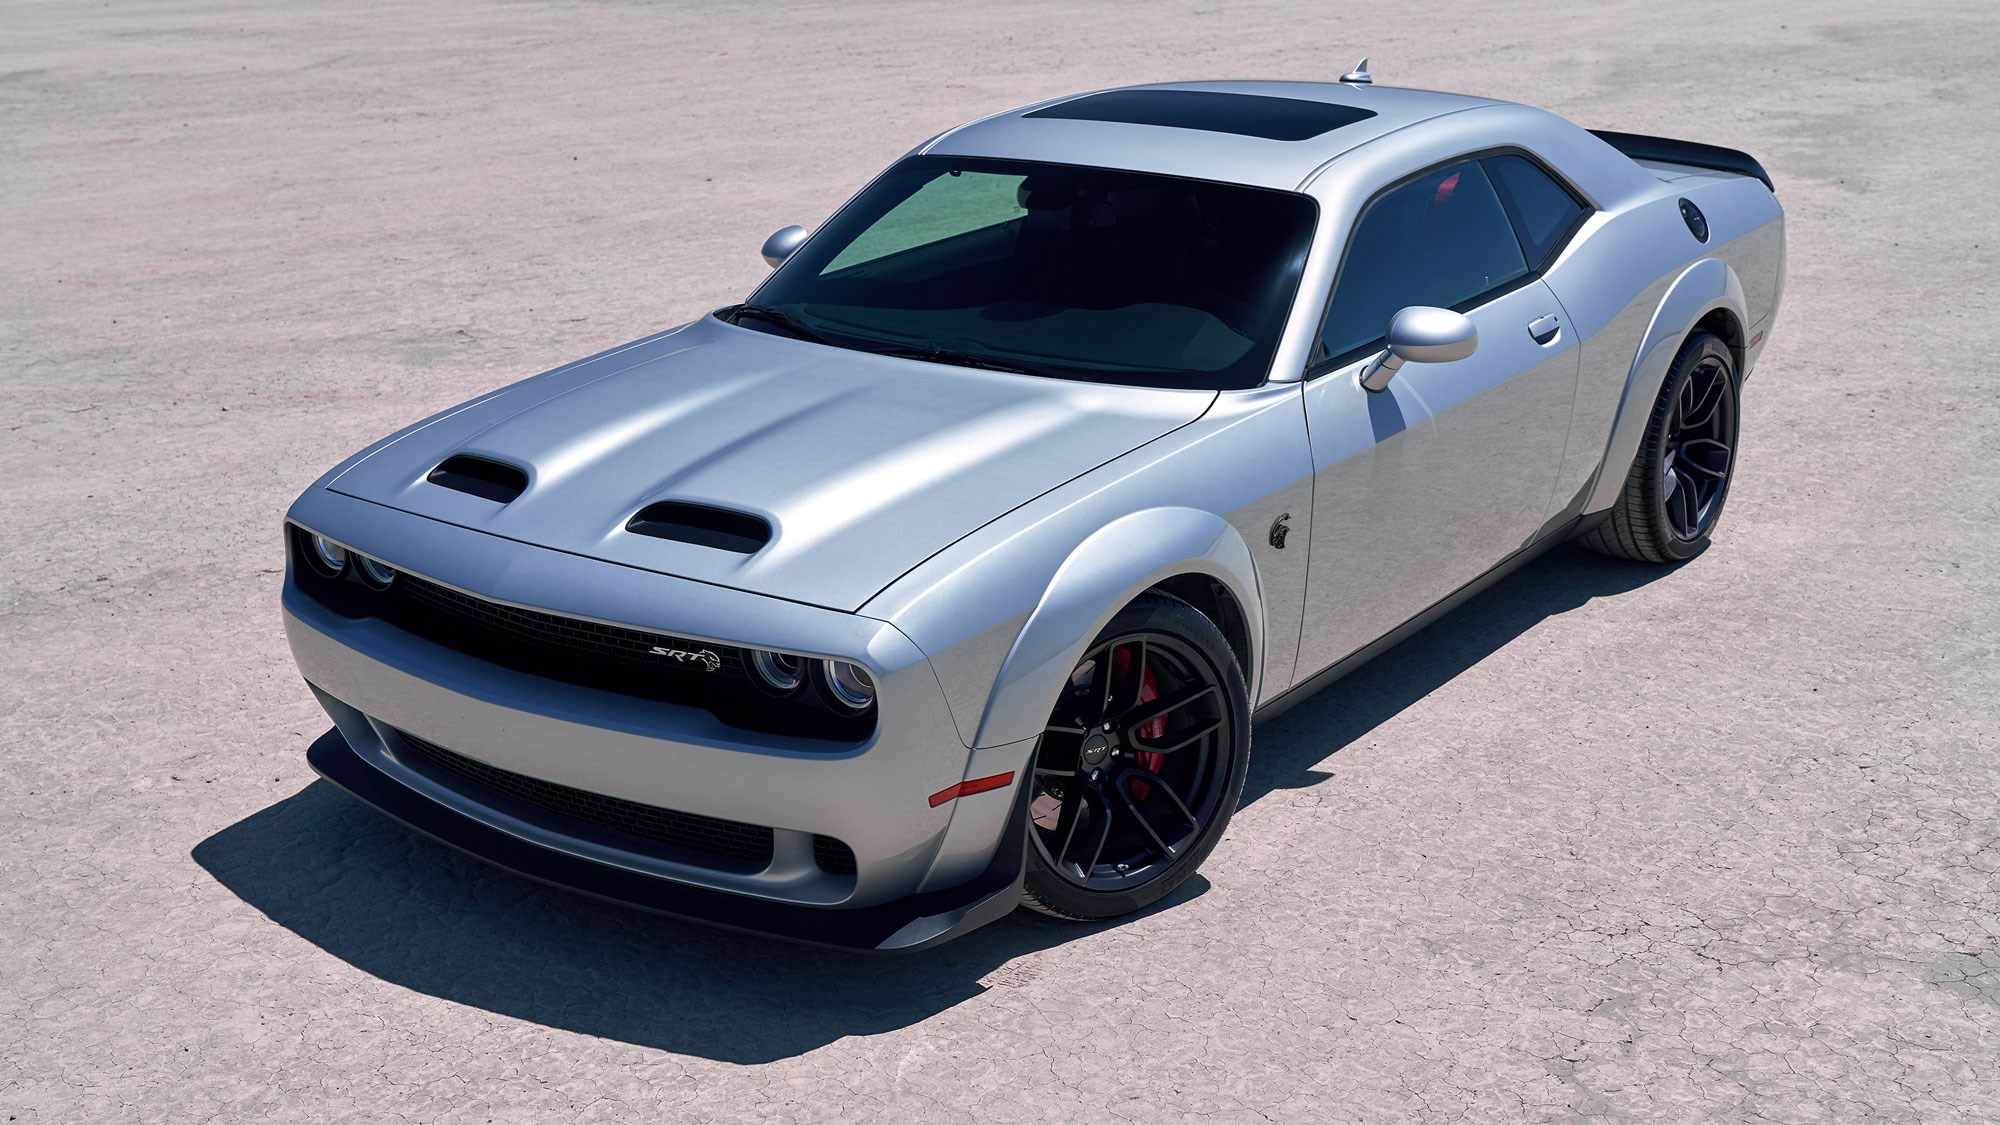 Meet The 2019 Dodge Challenger Srt Hellcat Redeye Widebody